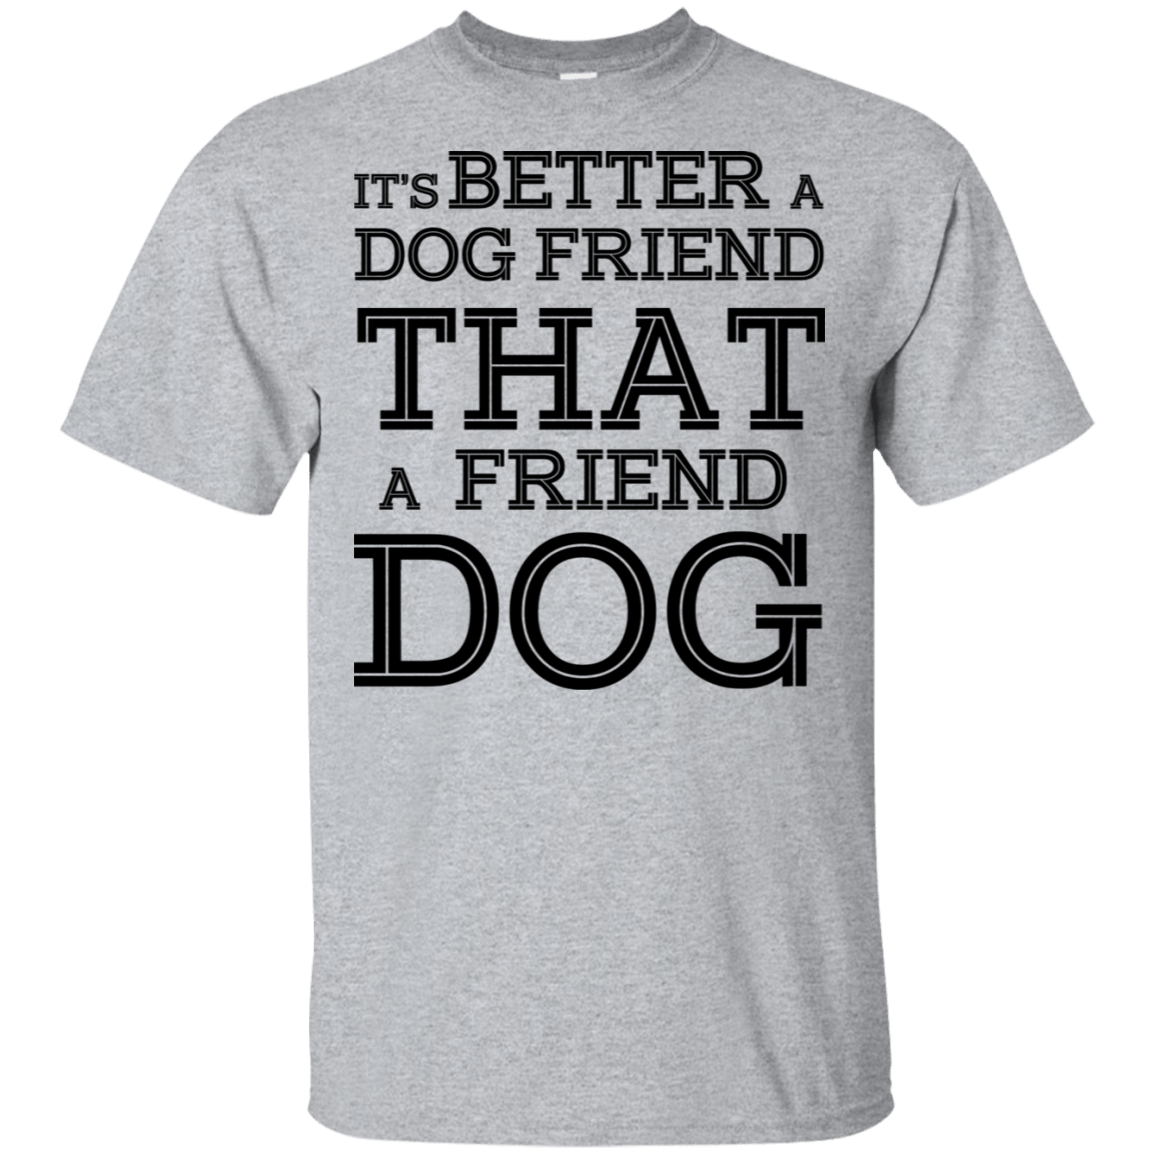 It's Better A Dog Friend That A Friend Dog 22-115-73564855-254 - Tee Ript